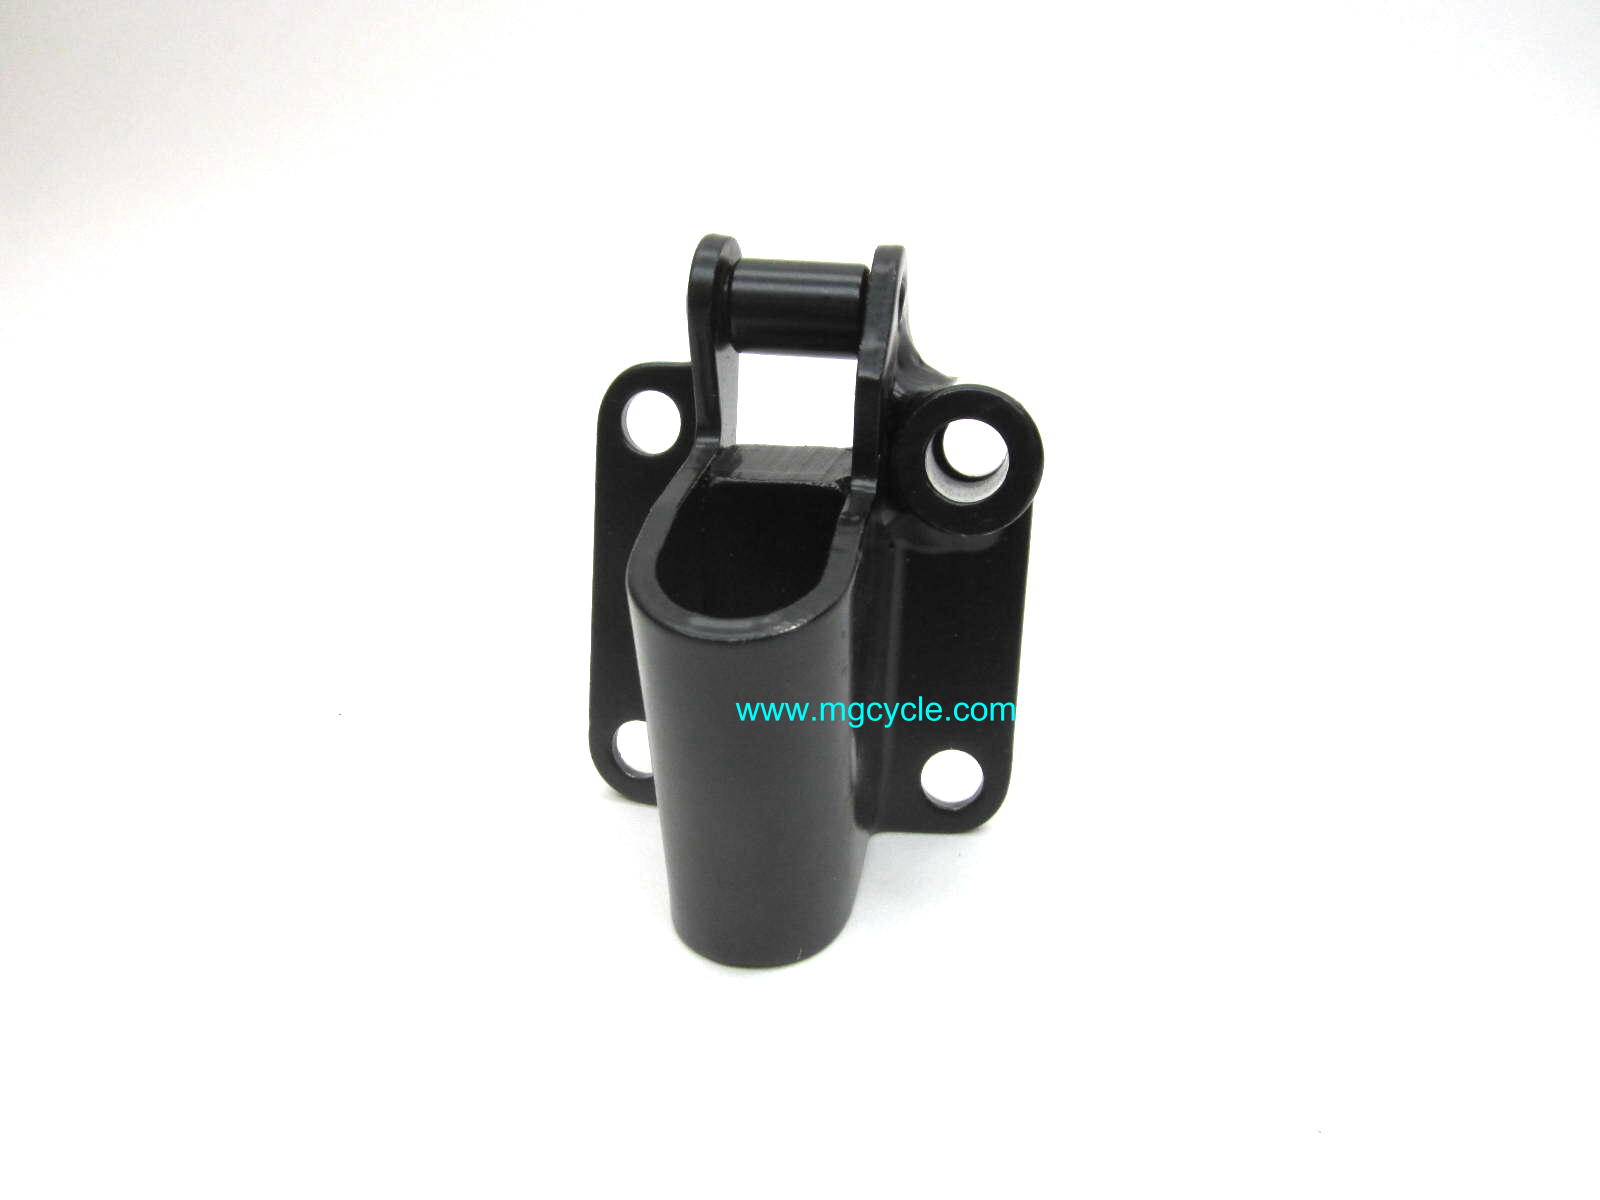 Big side stand bracket, Police sidestands GU13433440